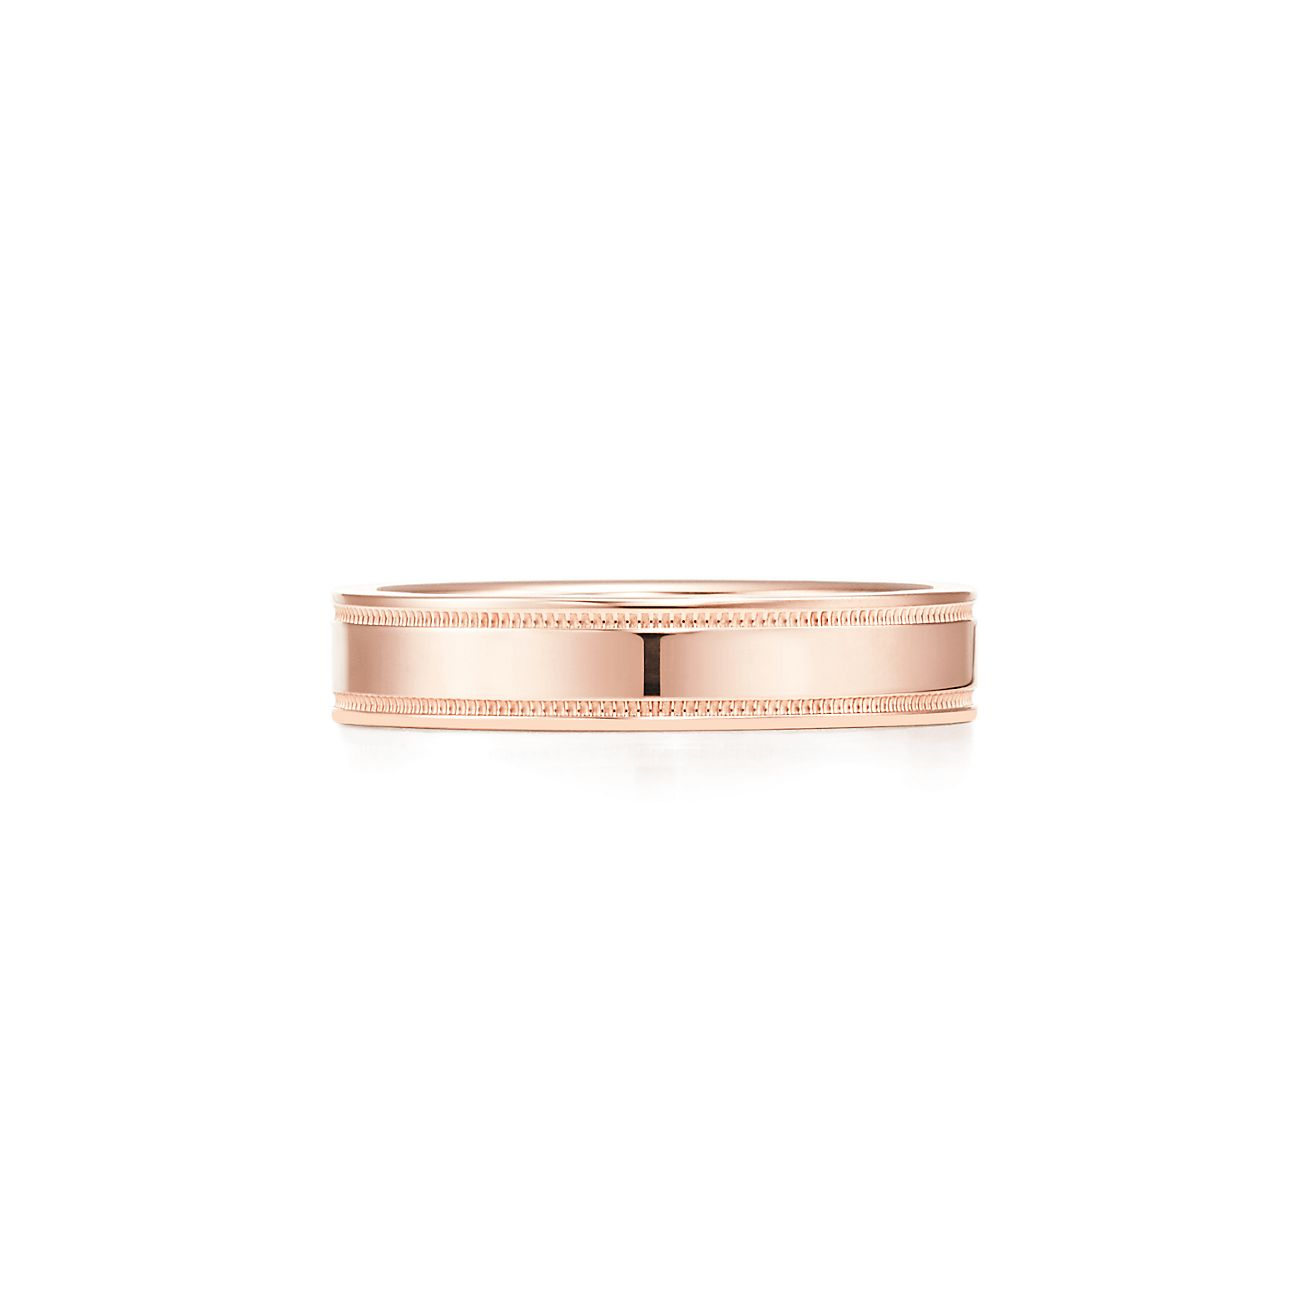 Tiffany & Co band ring in 18k gold with diamonds, 4 mm - Size 10 1/2 Tiffany & Co.